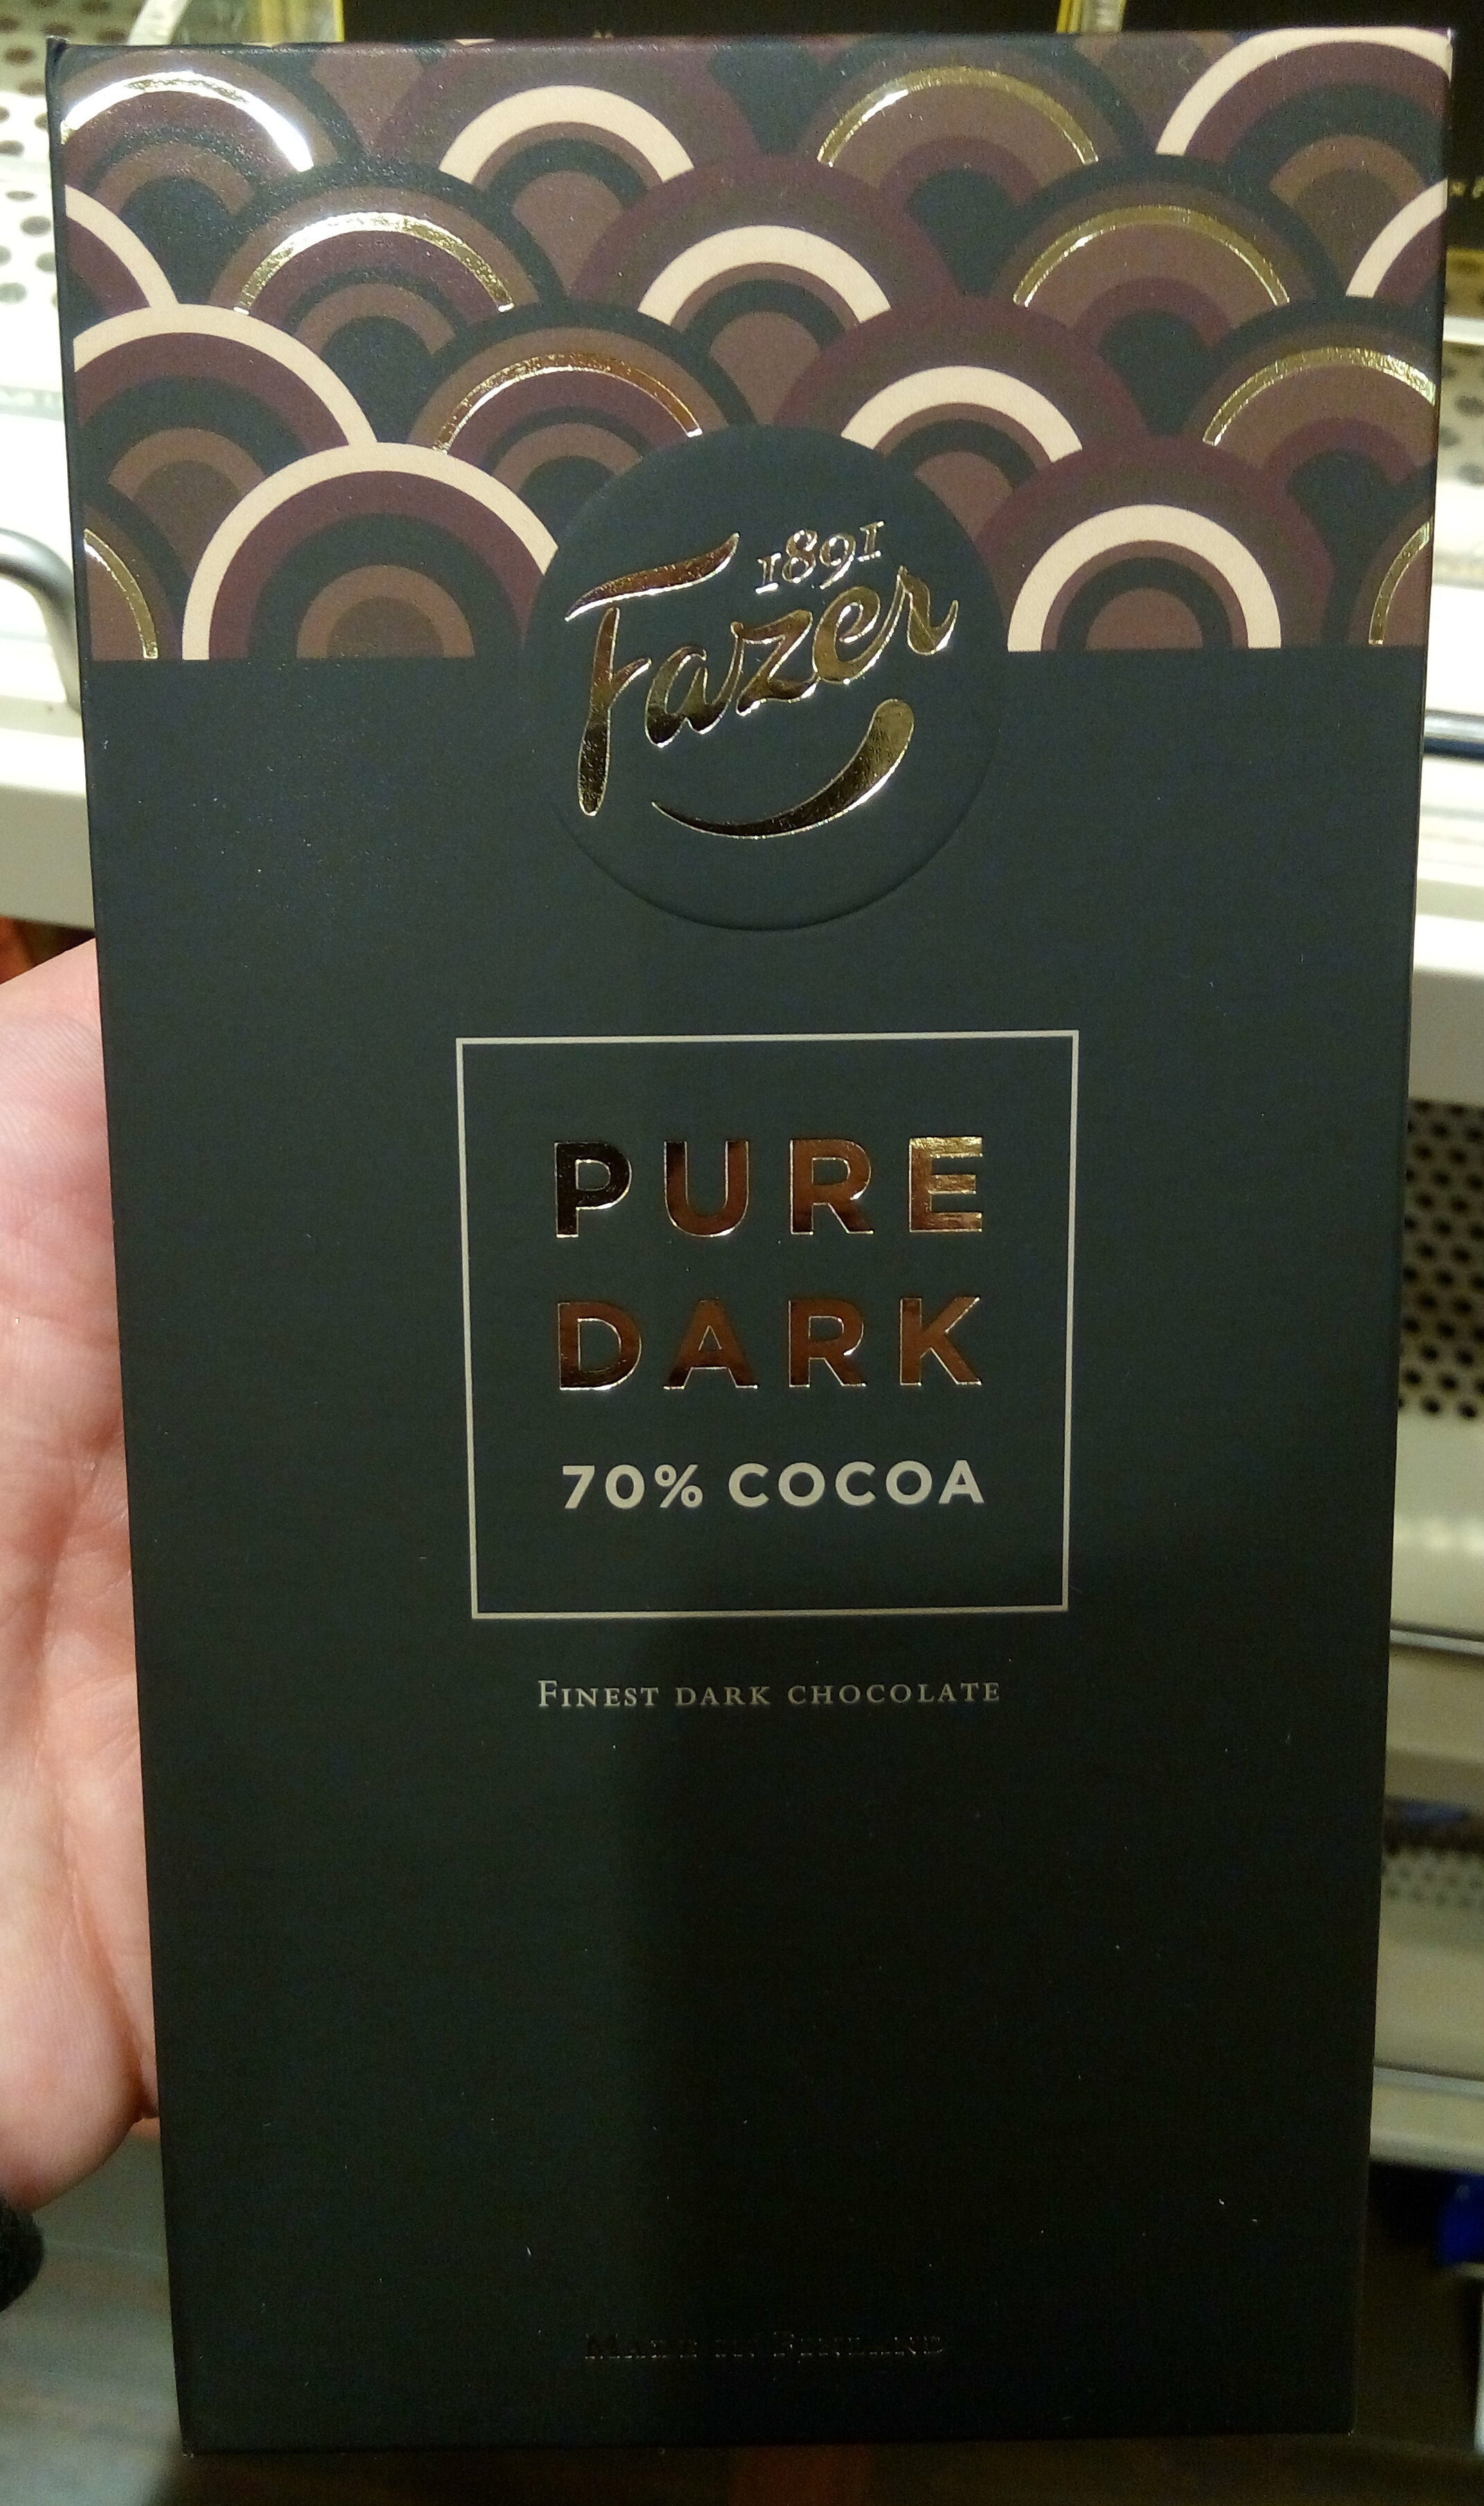 Pure Dark 70% Cocoa Finest Dark Chocolate - Produkt - da